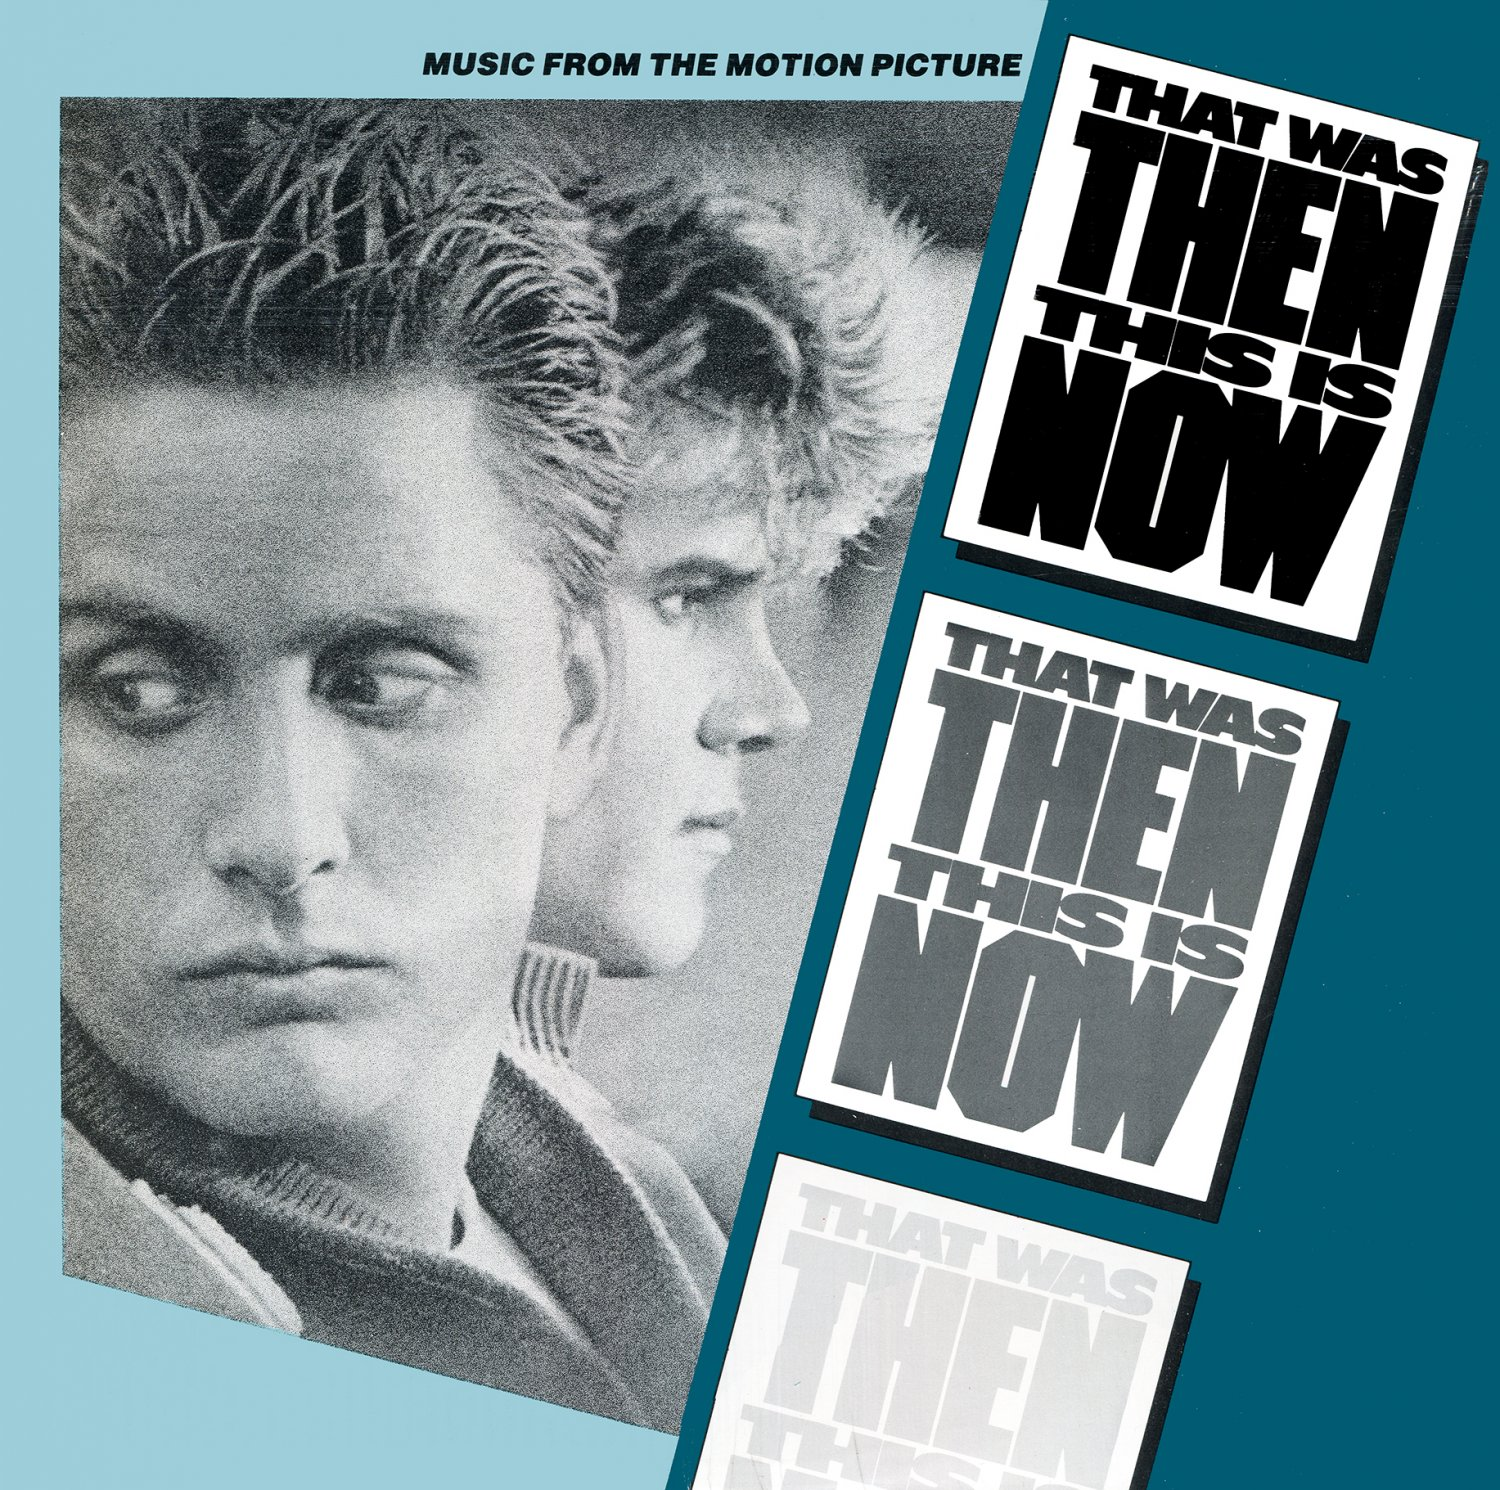 That Was Then This Is Now - Original Soundtrack, Keith Olsen & Bill Cuomo OST LP/CD